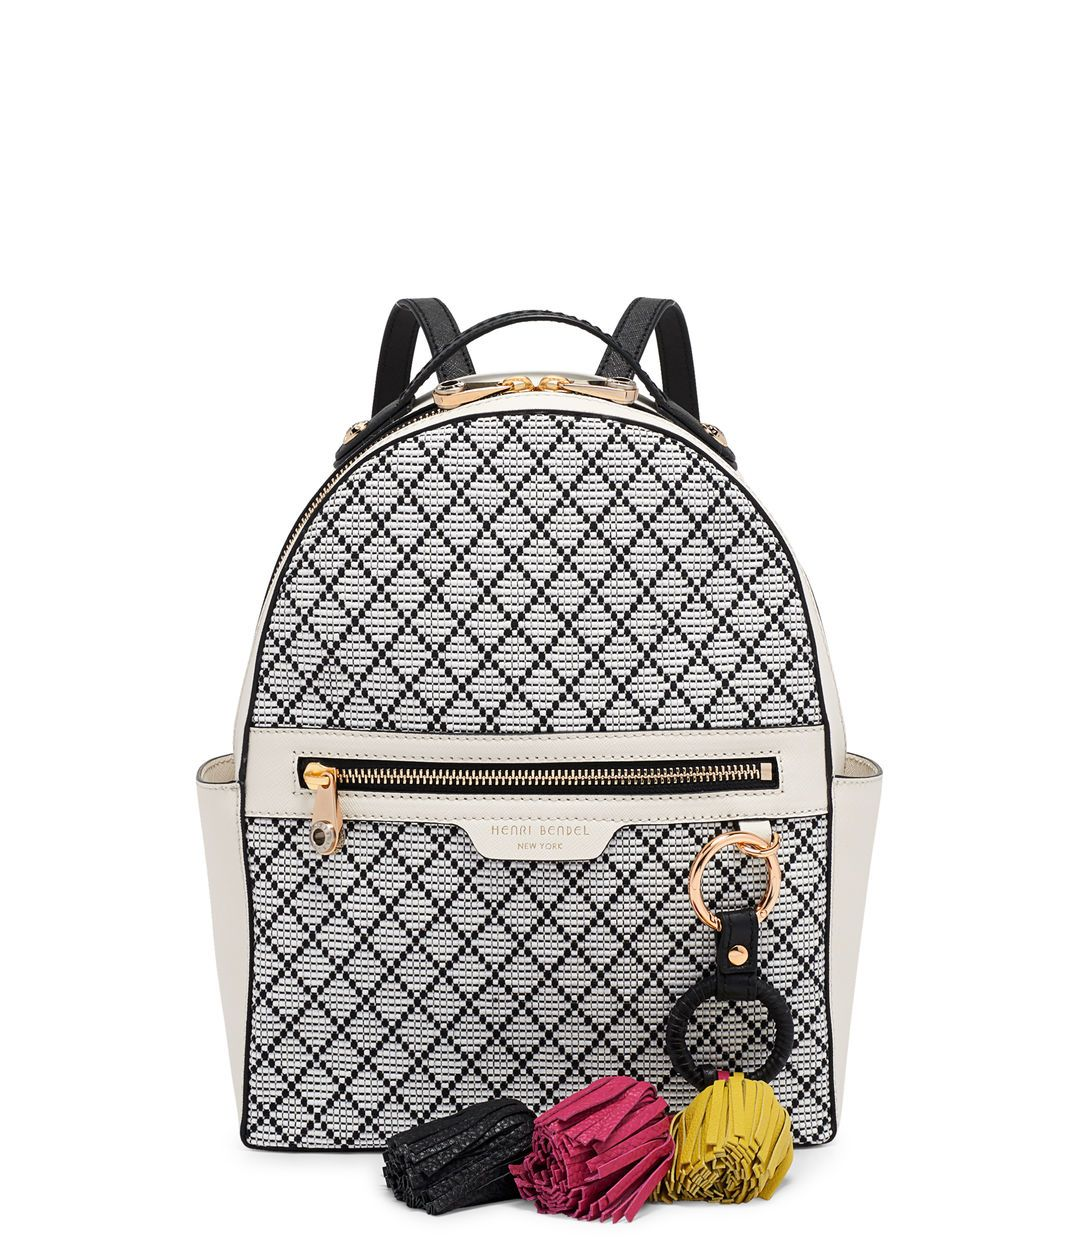 Intricate yet effortless, the West 57th Straw Tassel Backpack is the luxury handbag choice for a global Bendel Girl. Crafted with saffiano leather and exquisite lattice straw detailing, this efficiently appointed handbag offers tons of secure pocket space perfect for any awaiting spring adventure.